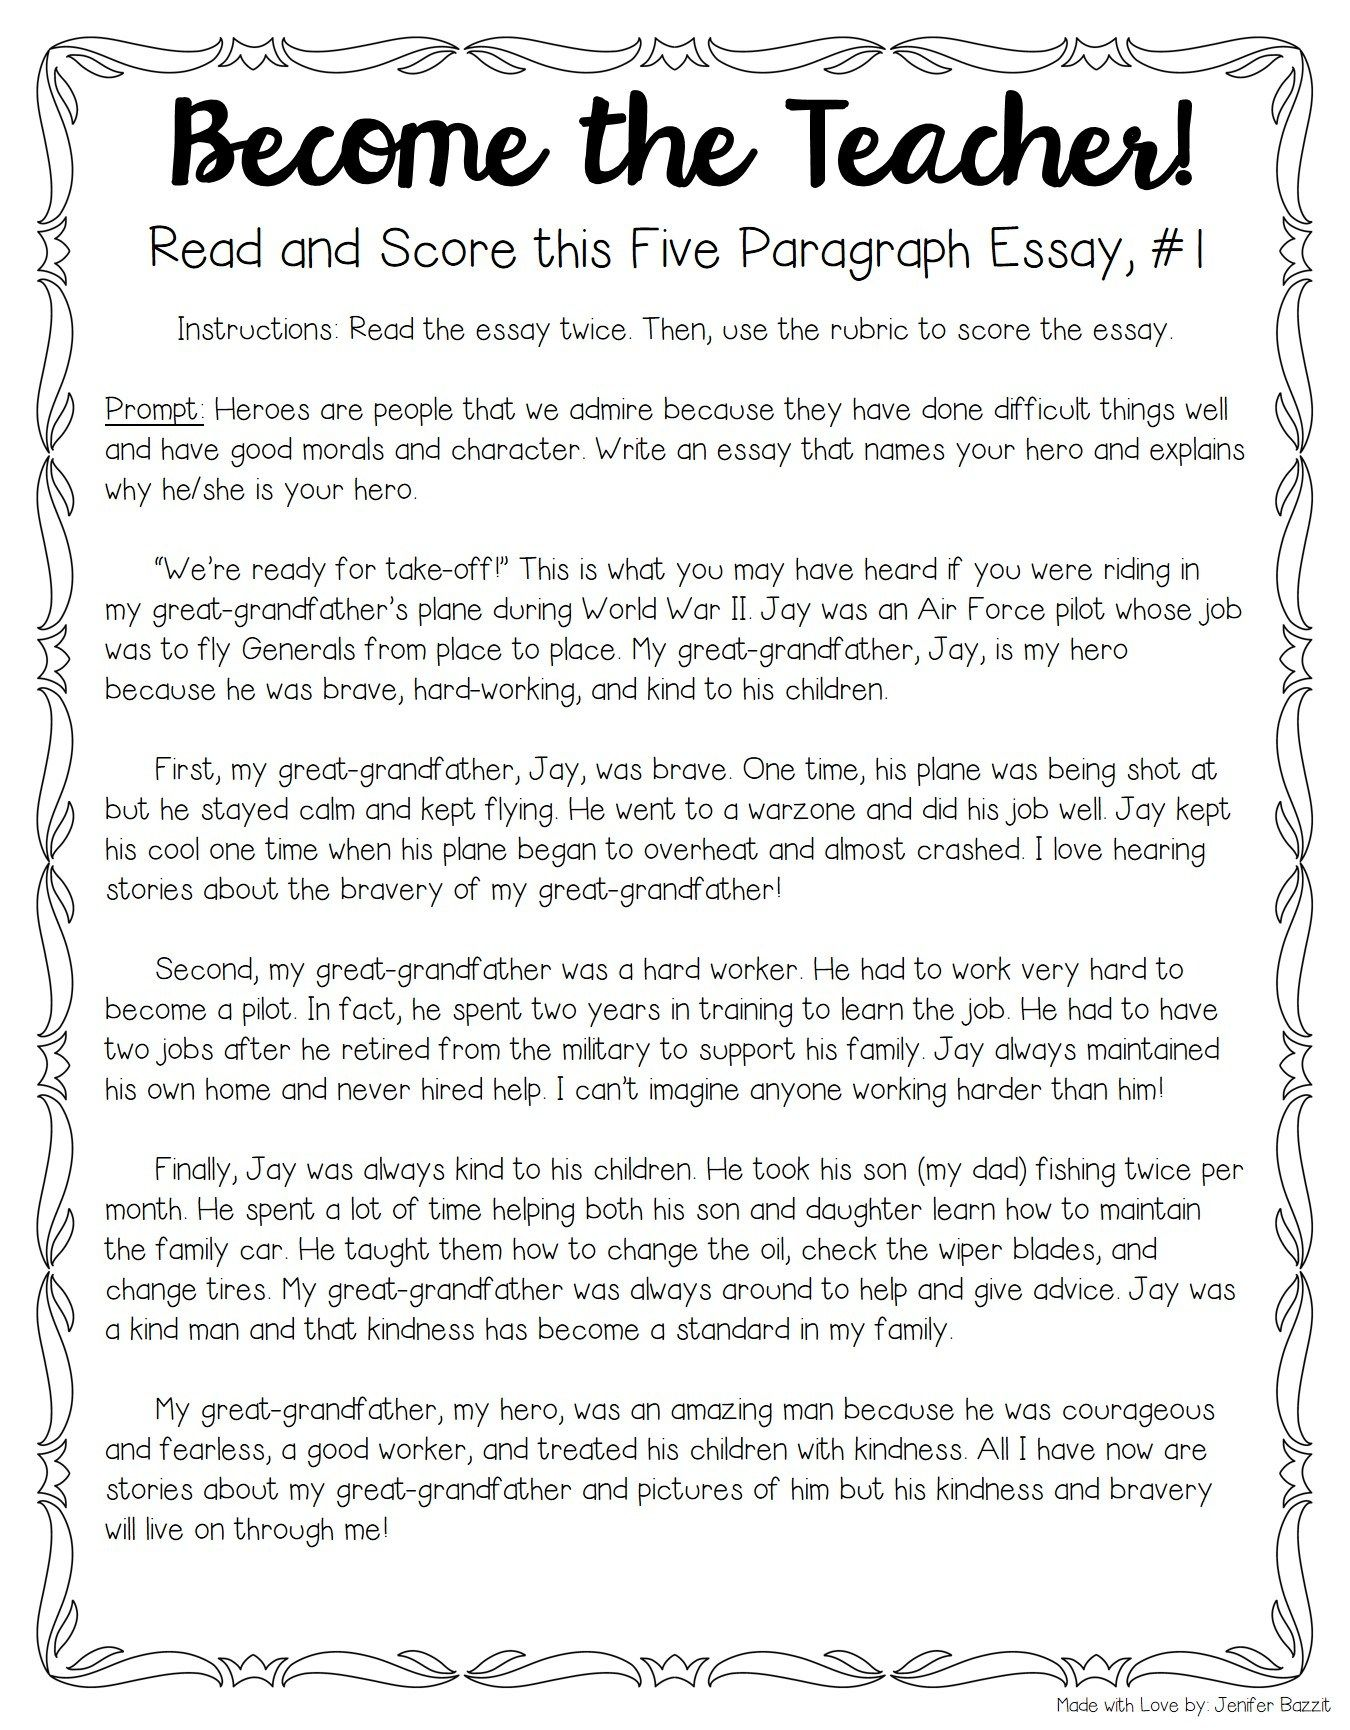 Tips For Teaching And Grading Five Paragraph Essays